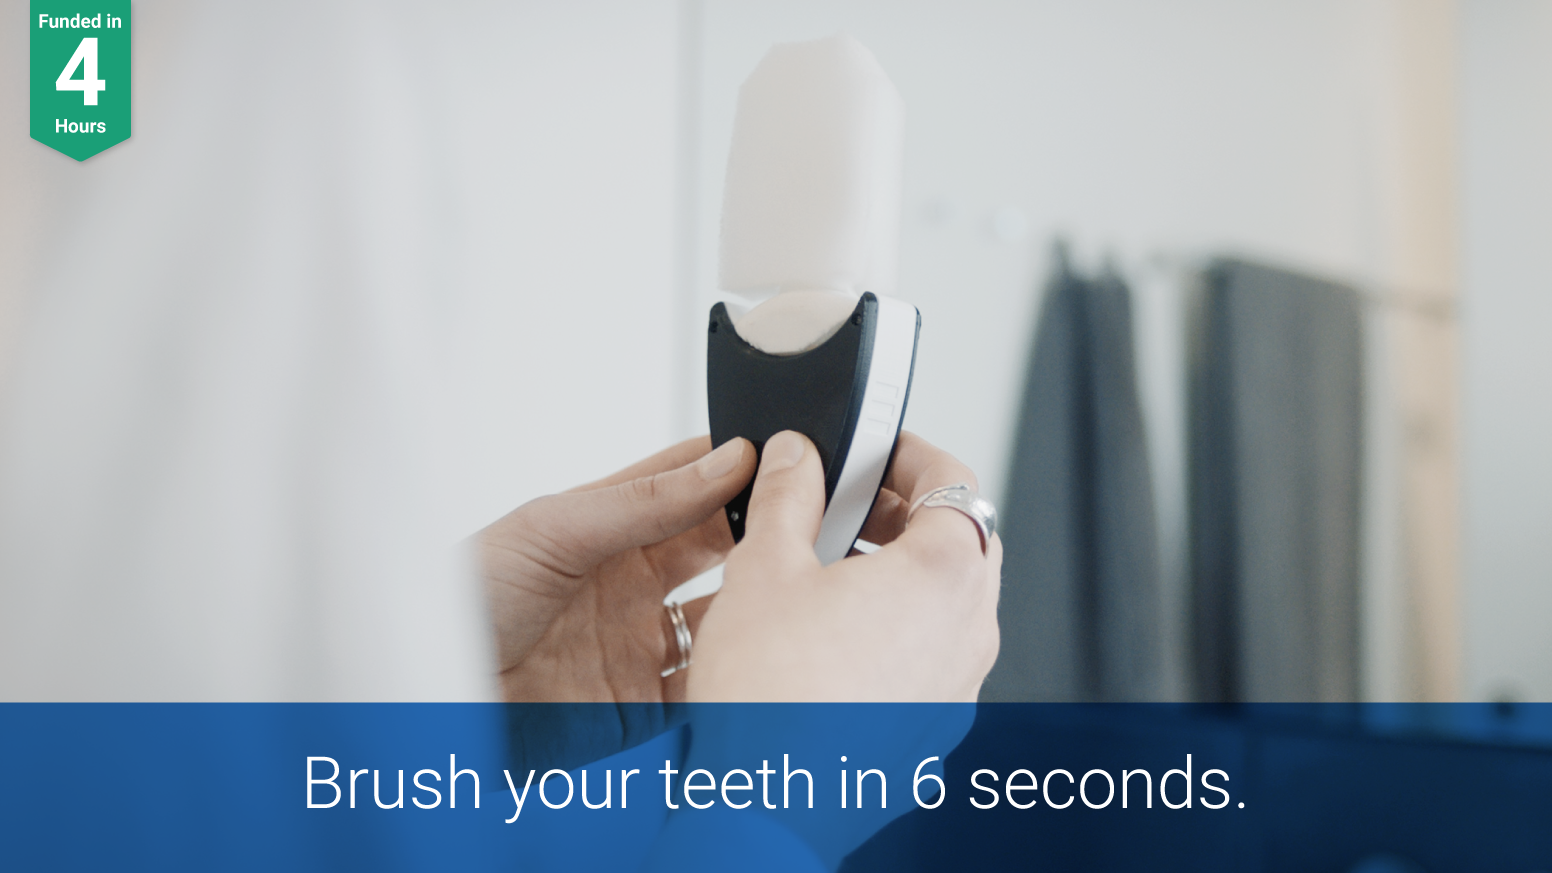 UNOBRUSH™ is the world's smartest toothbrush that delivers a refreshing clean to your mouth in just 6 seconds.